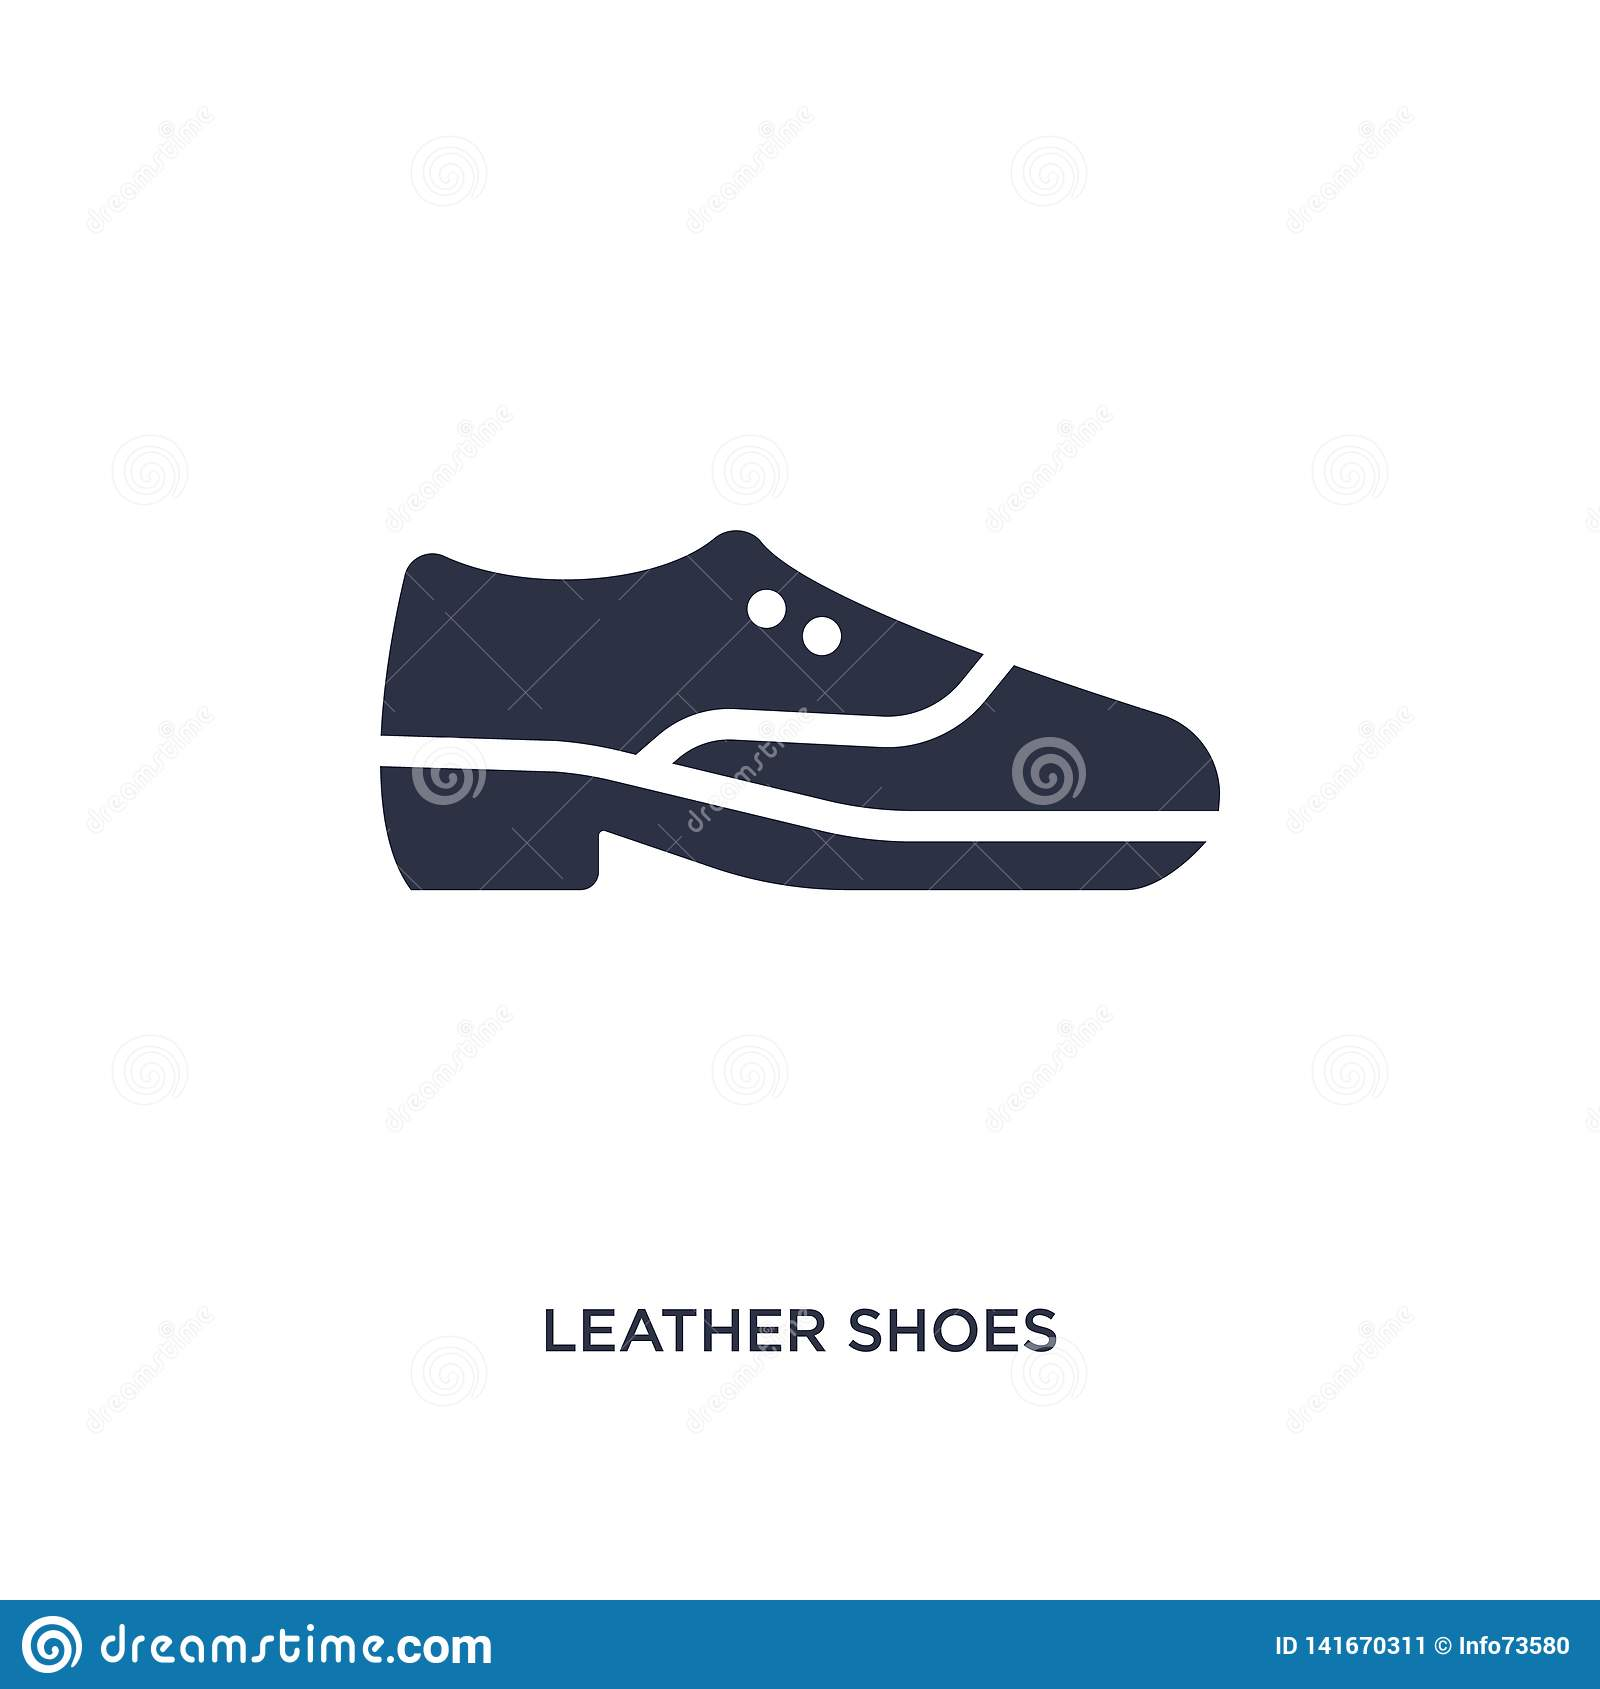 leather shoes icon on white background. Simple element illustration from clothes concept